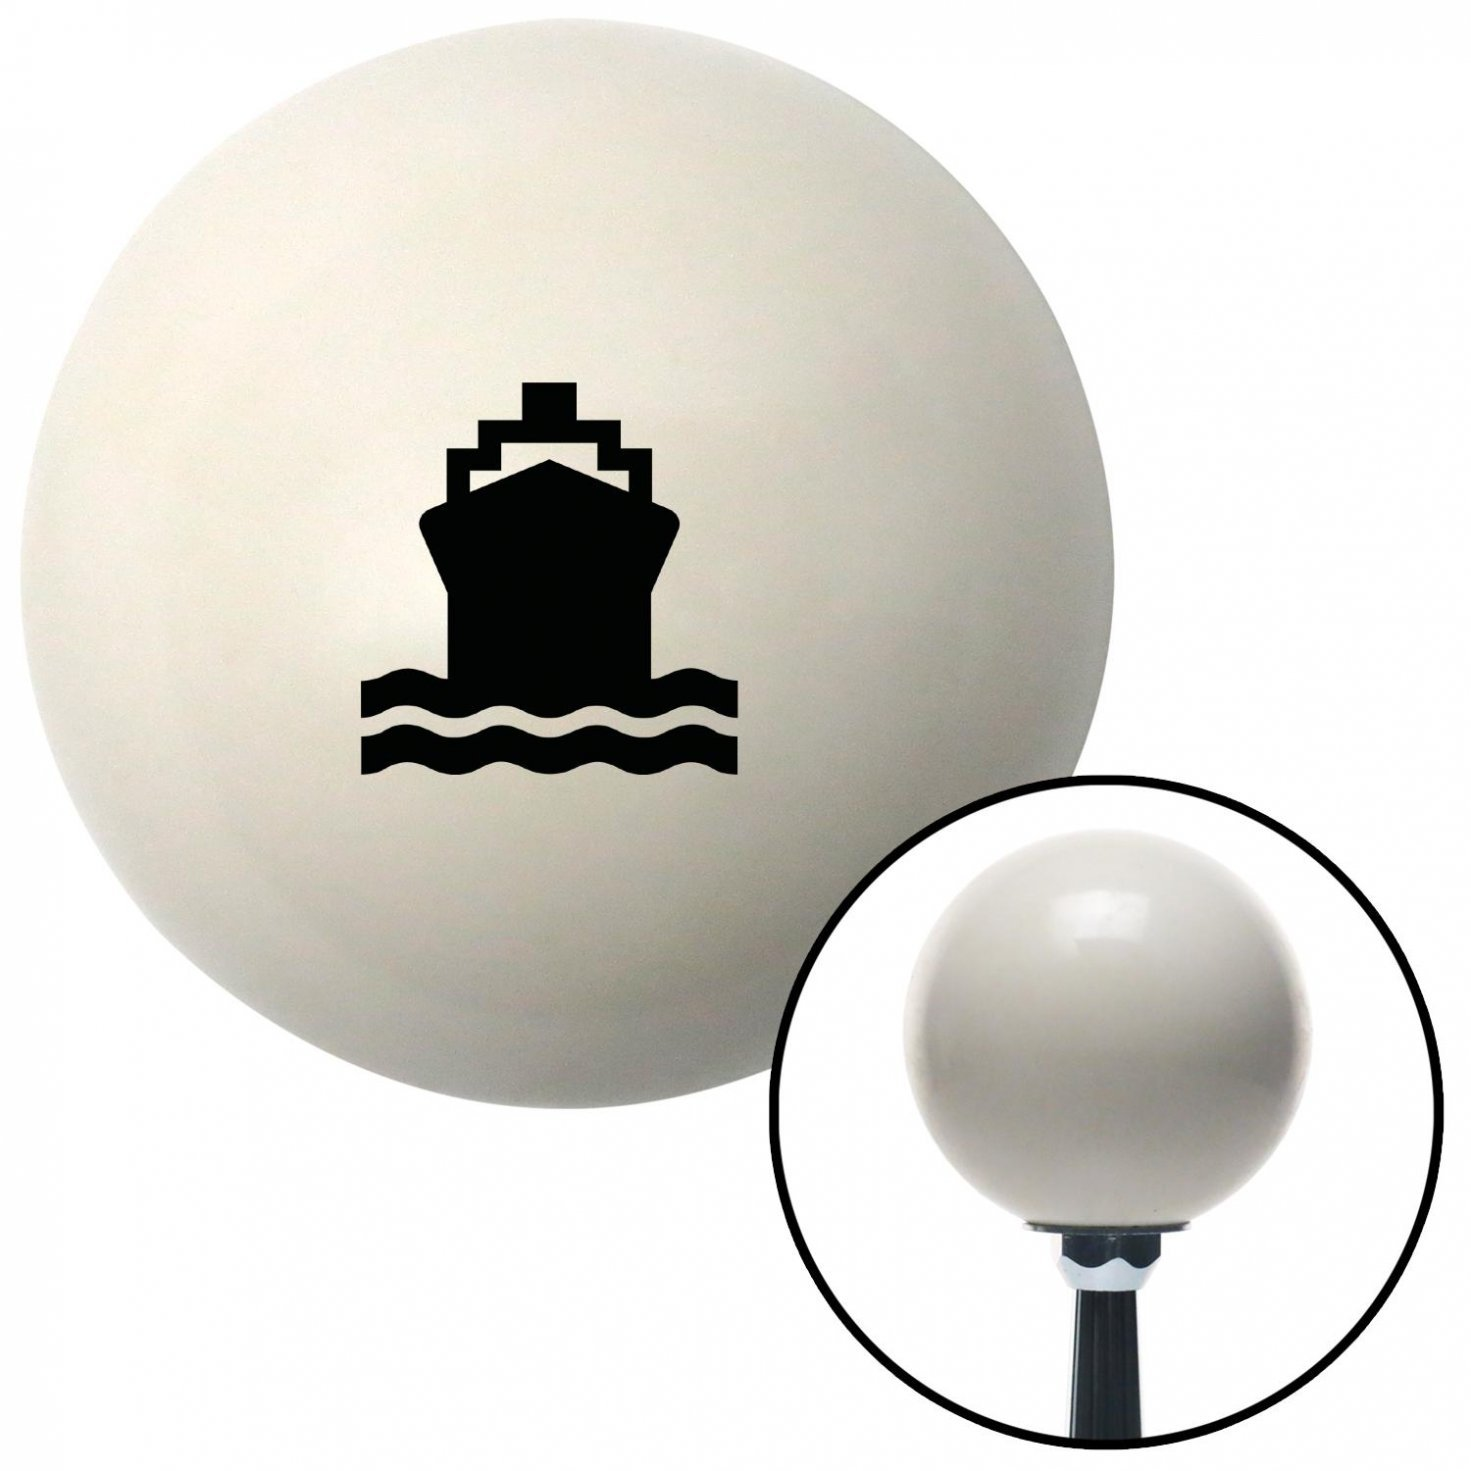 American Shifter 34501 Ivory Shift Knob with 16mm x 1.5 Insert Black Cruise Ship